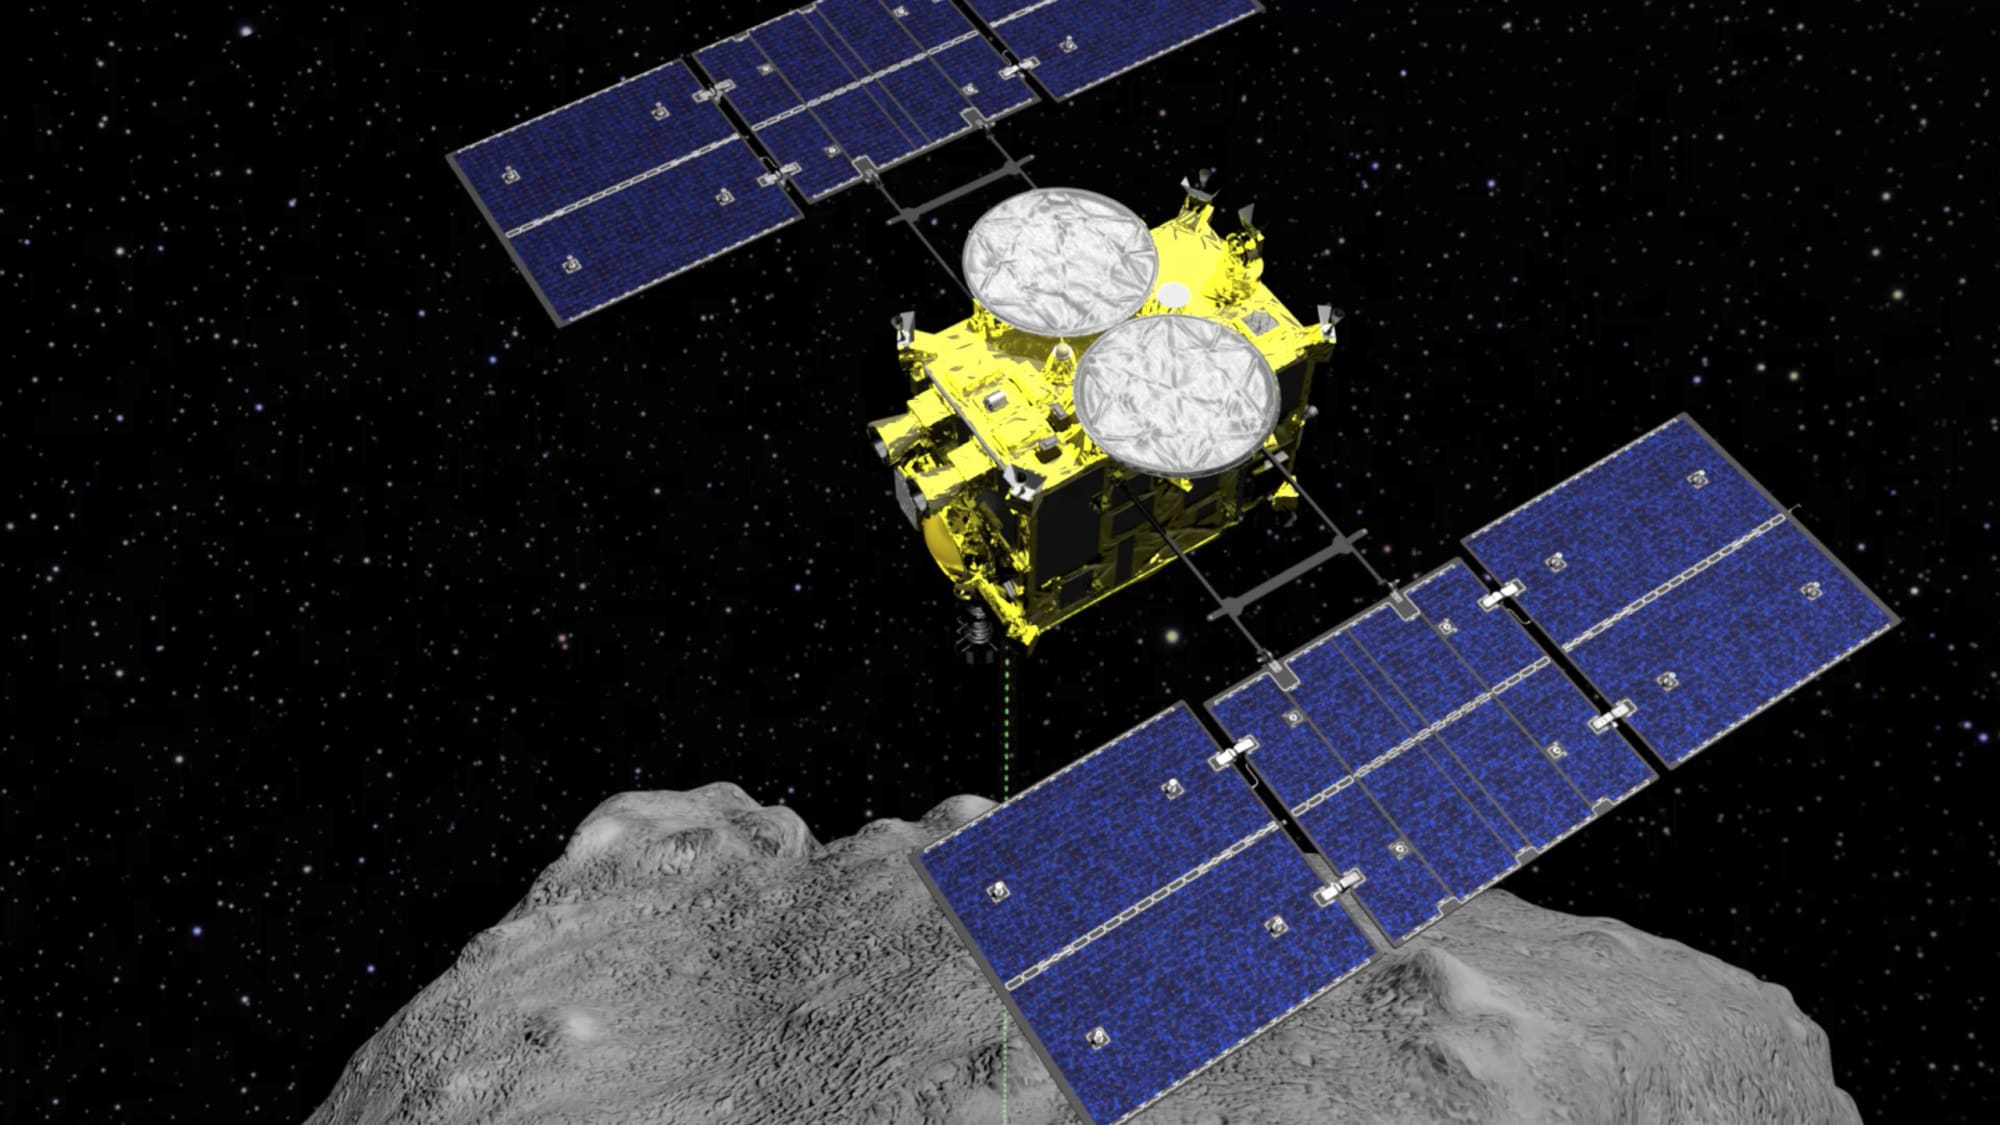 Japan's Hayabusa2 probe attempts its final asteroid landing at 9:15 PM ET